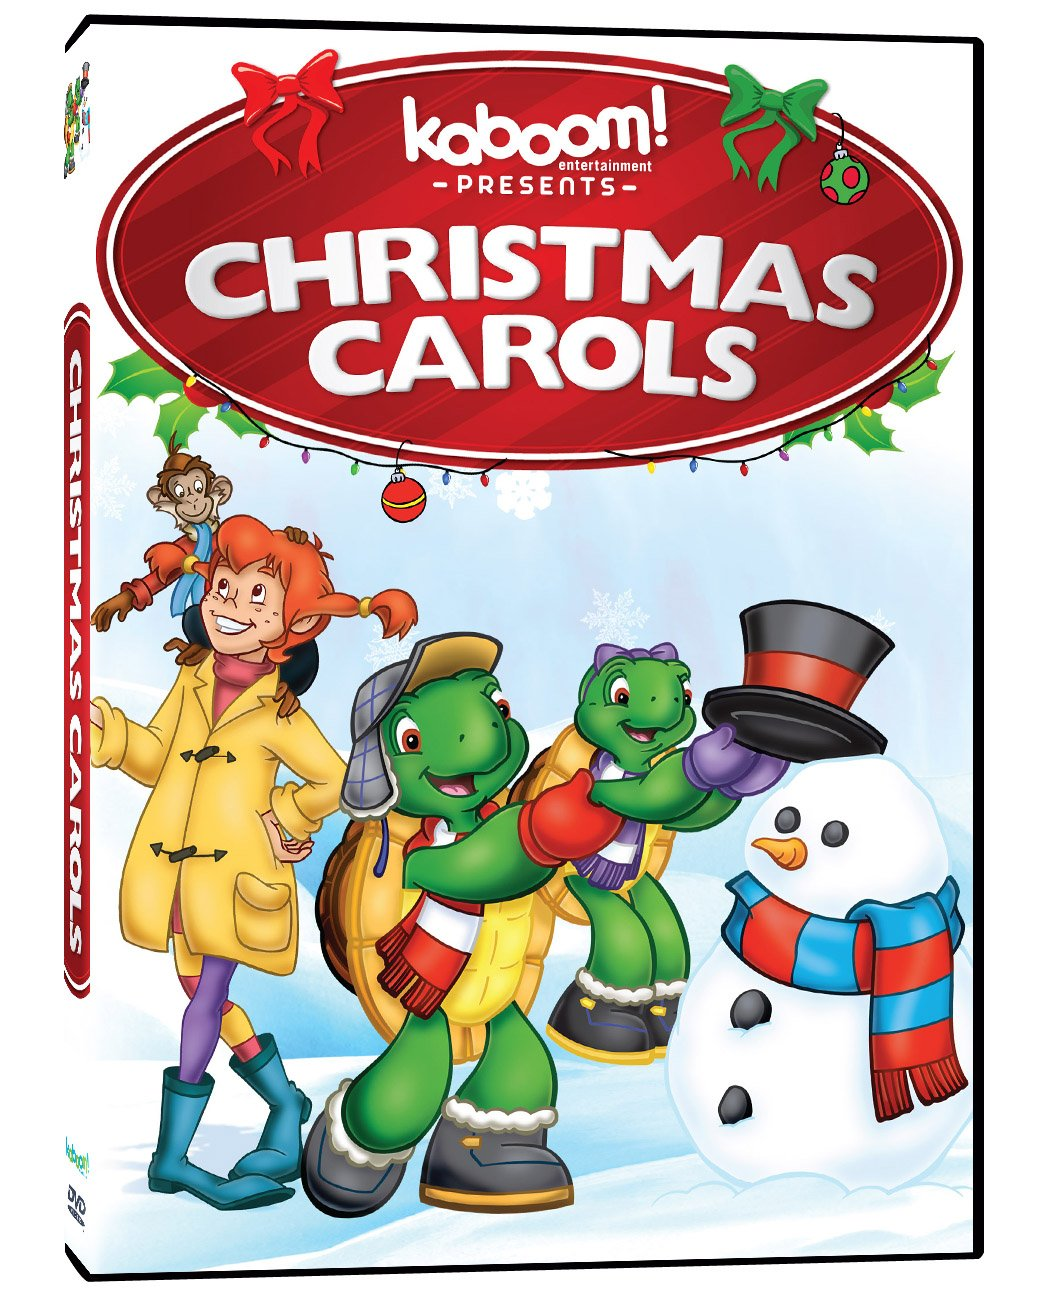 Amazon.com: Kaboom!: Christmas Carols - Merry Christmas: Not ...